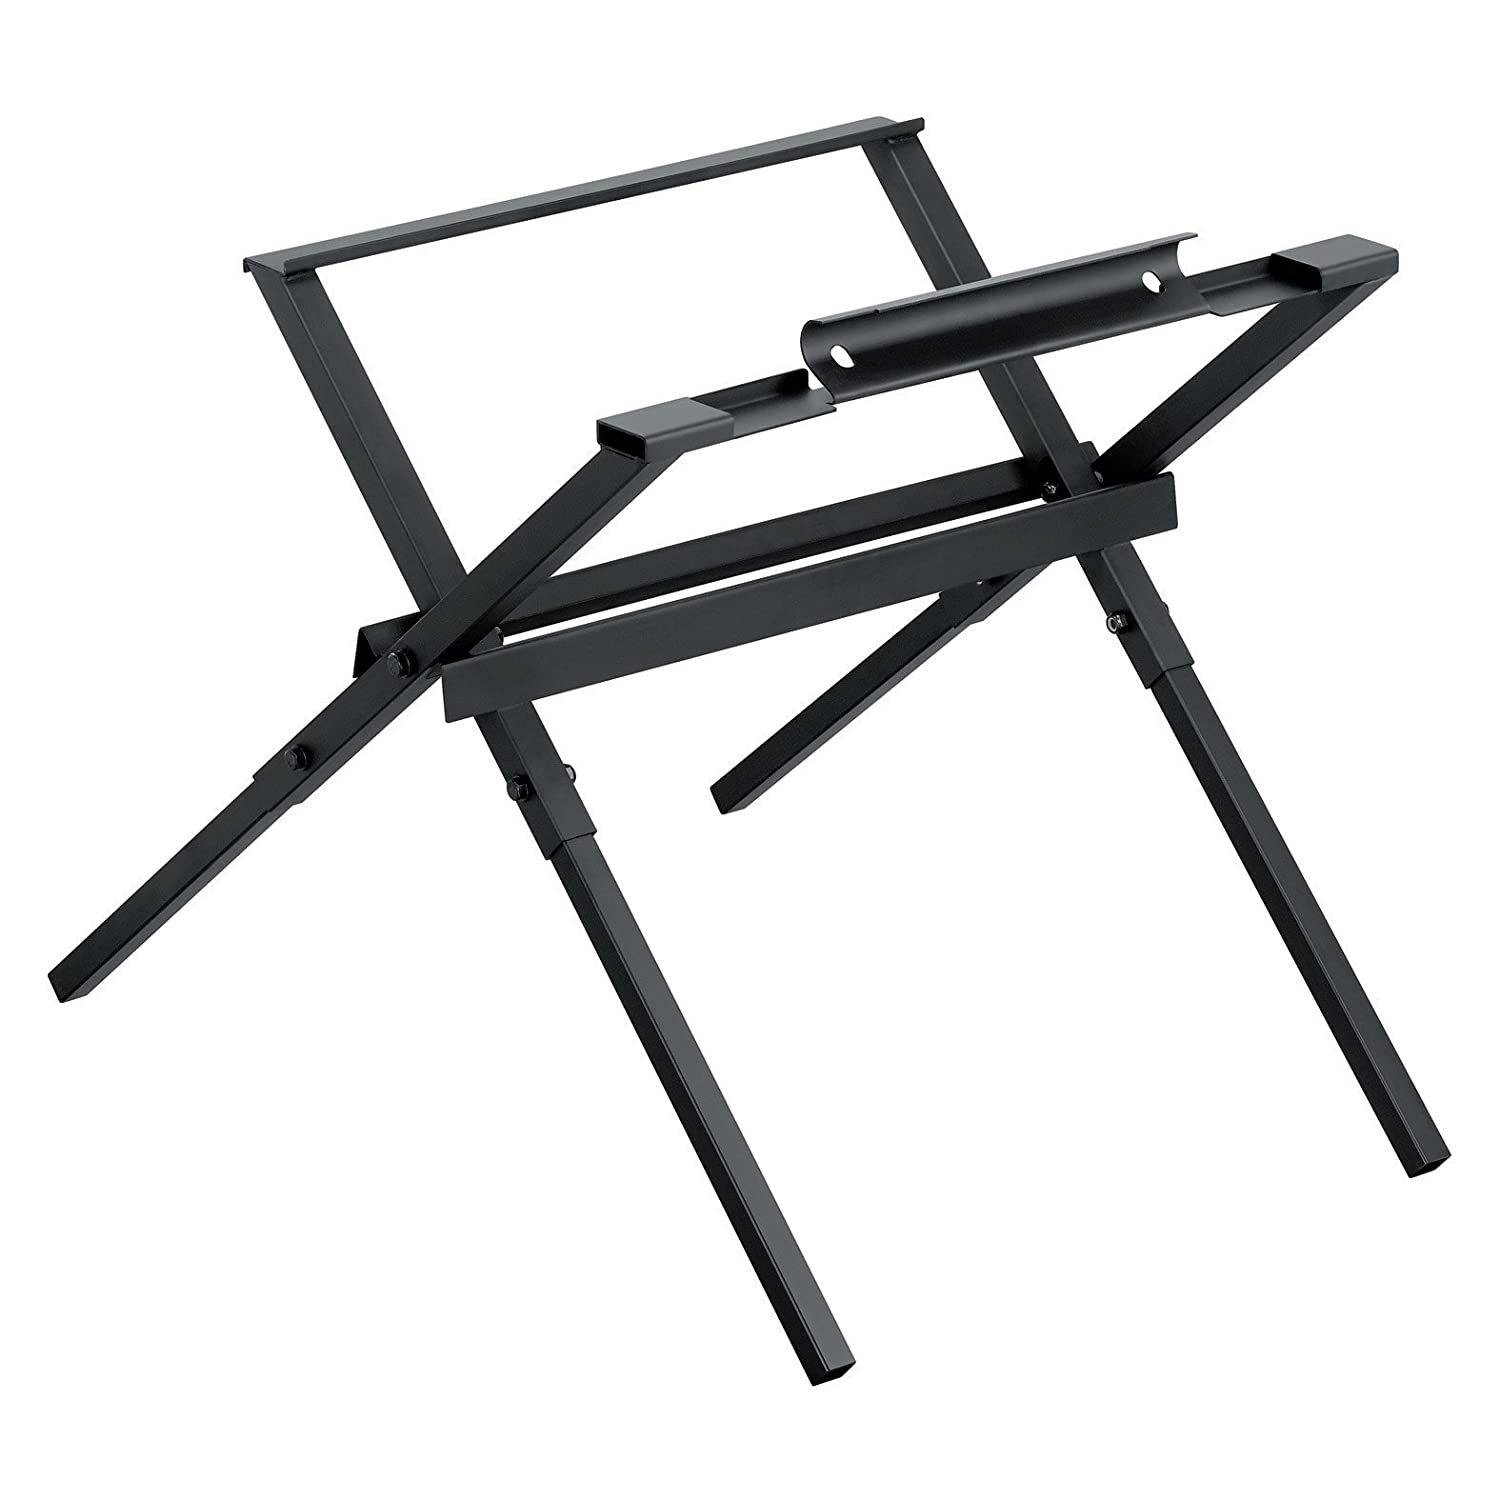 DEWALT DW7450 Table Saw Stand For DW745 10 Inch Compact Job Site Table Saw    Table Saw Accessories   Amazon.com